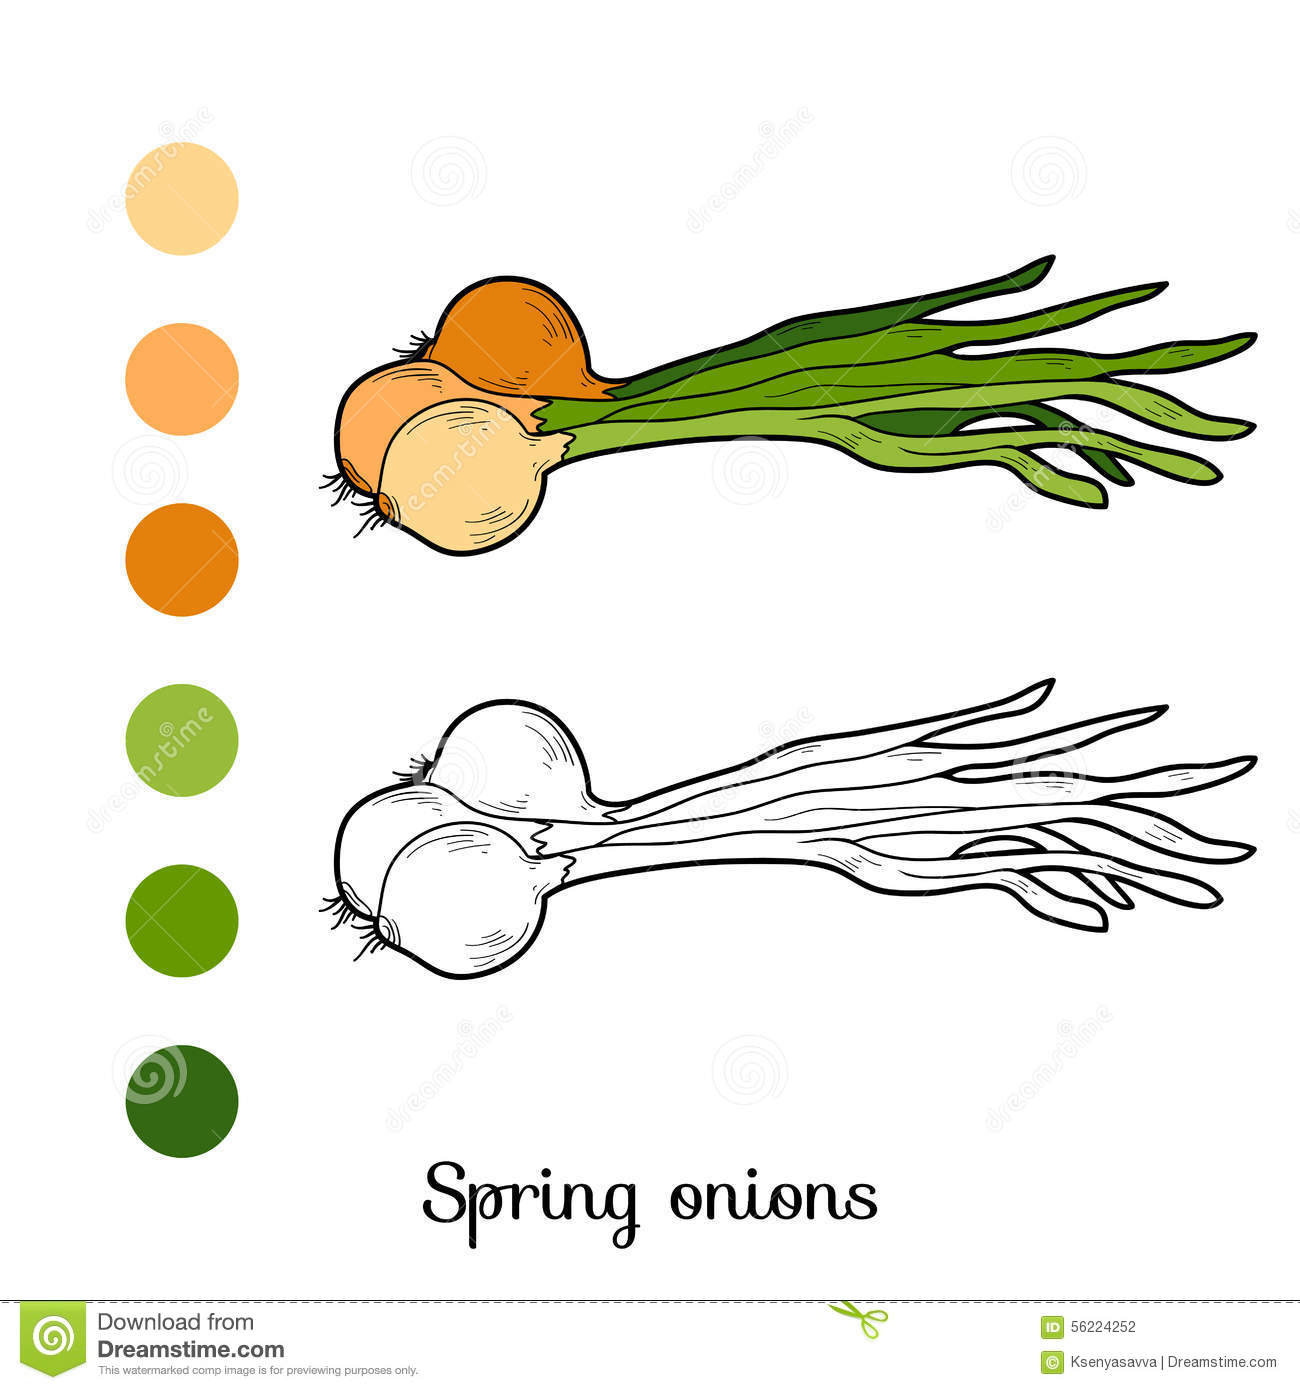 Coloring book pictures of vegetables - Coloring Book Fruits And Vegetables Spring Onions Stock Photography